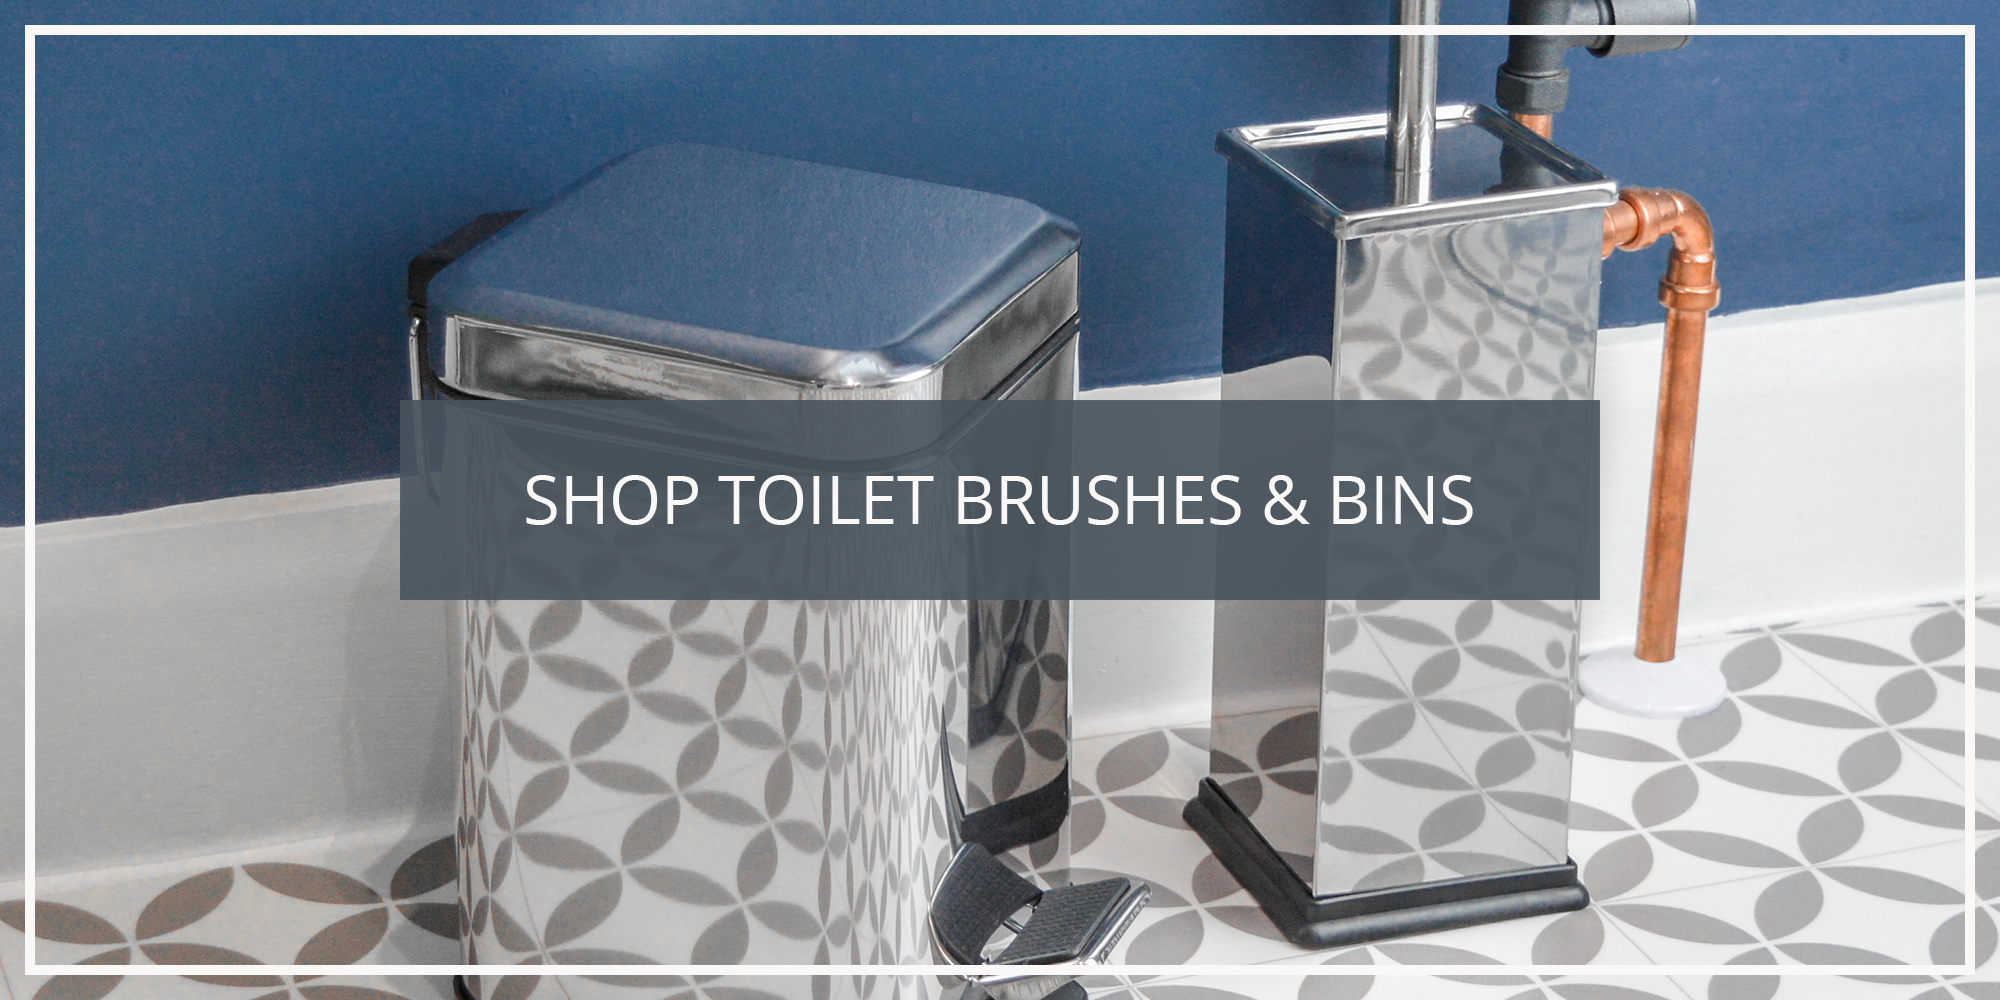 Shop the Harbour Housewares Collection of Bathroom Bins and Toilet Brushes